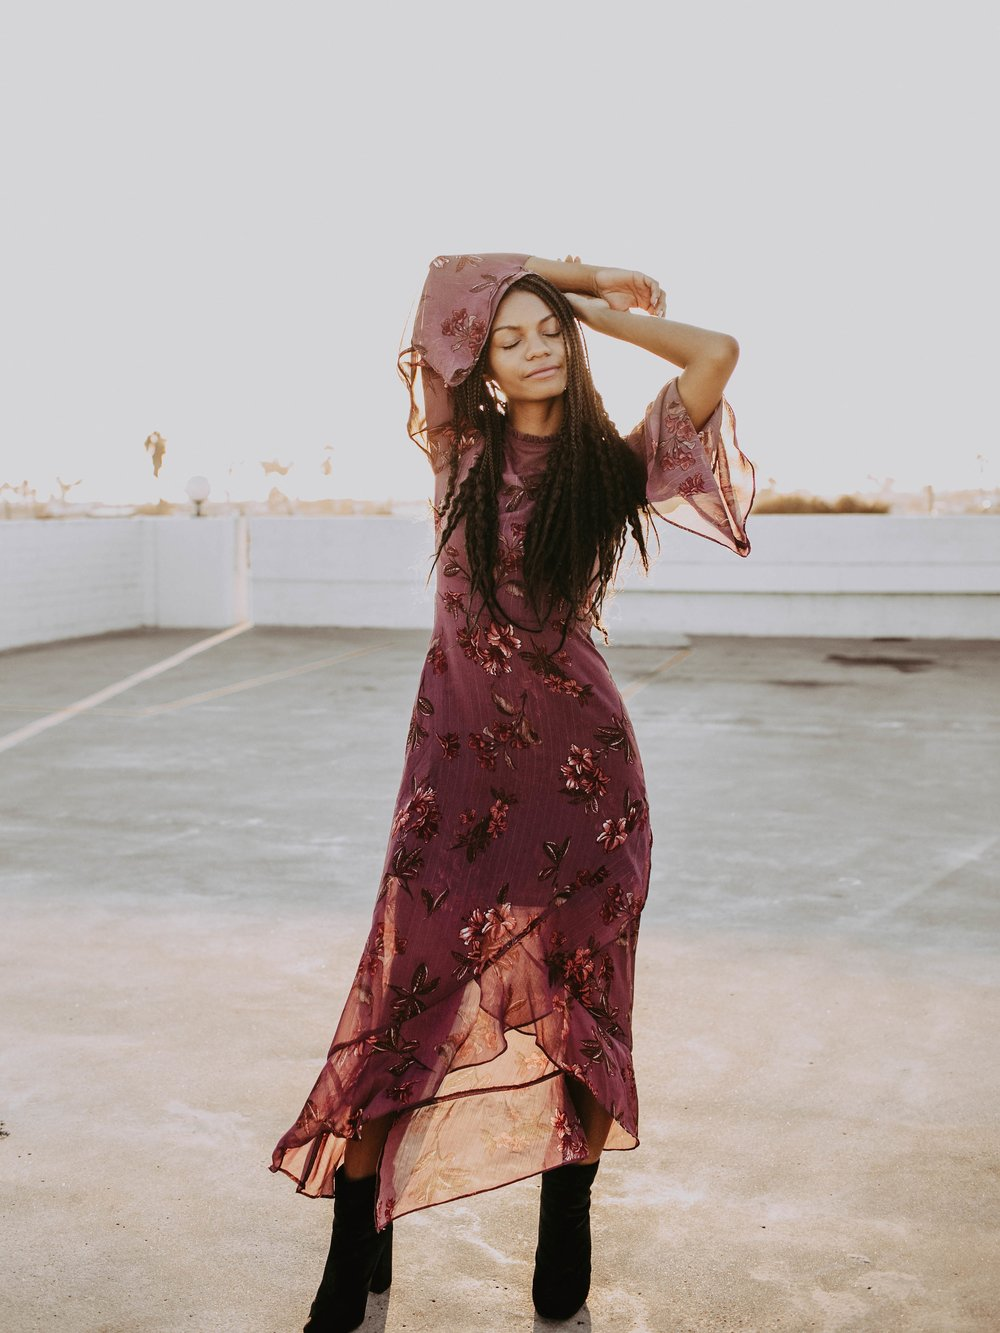 Thrifted red floral dress by Jolt // A Week Of 1970s-Inspired Outfits With Leah Thomas, The Sustainable Lifestyle Blogger Behind Green Girl Leah on The Good Trade